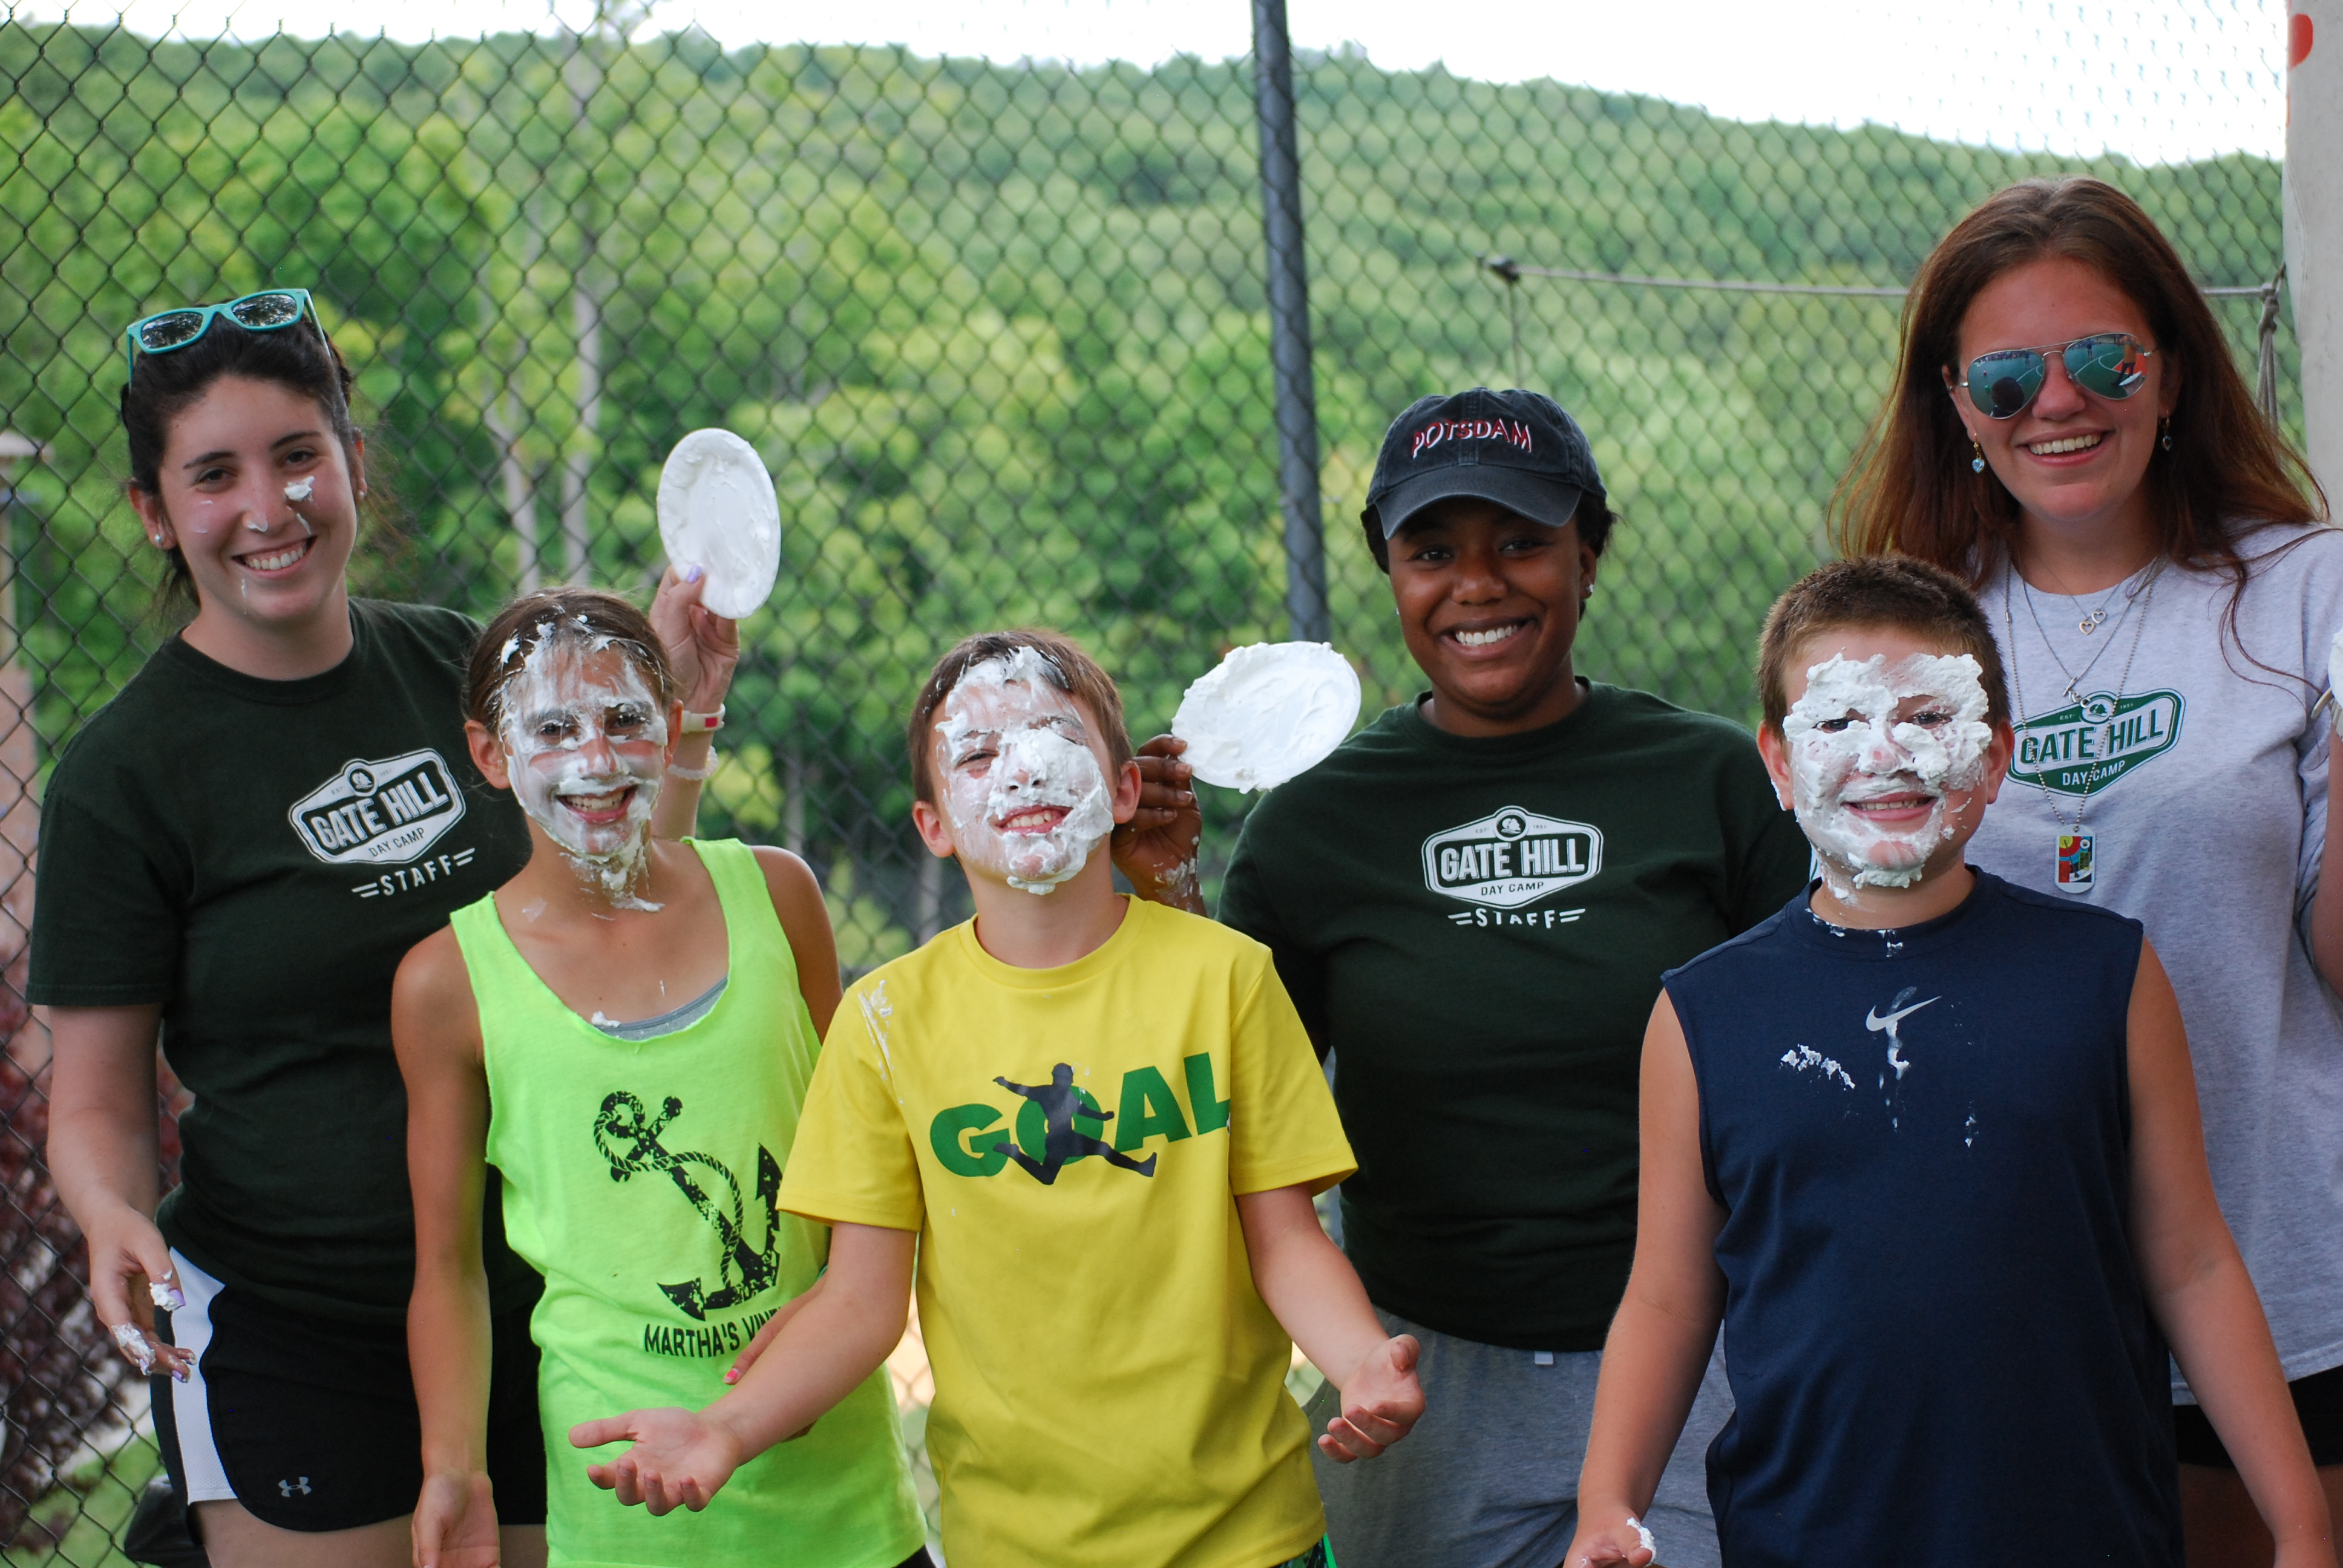 cc1d45ebde6f Apply today for a great summer job at Gate Hill Day Camp!